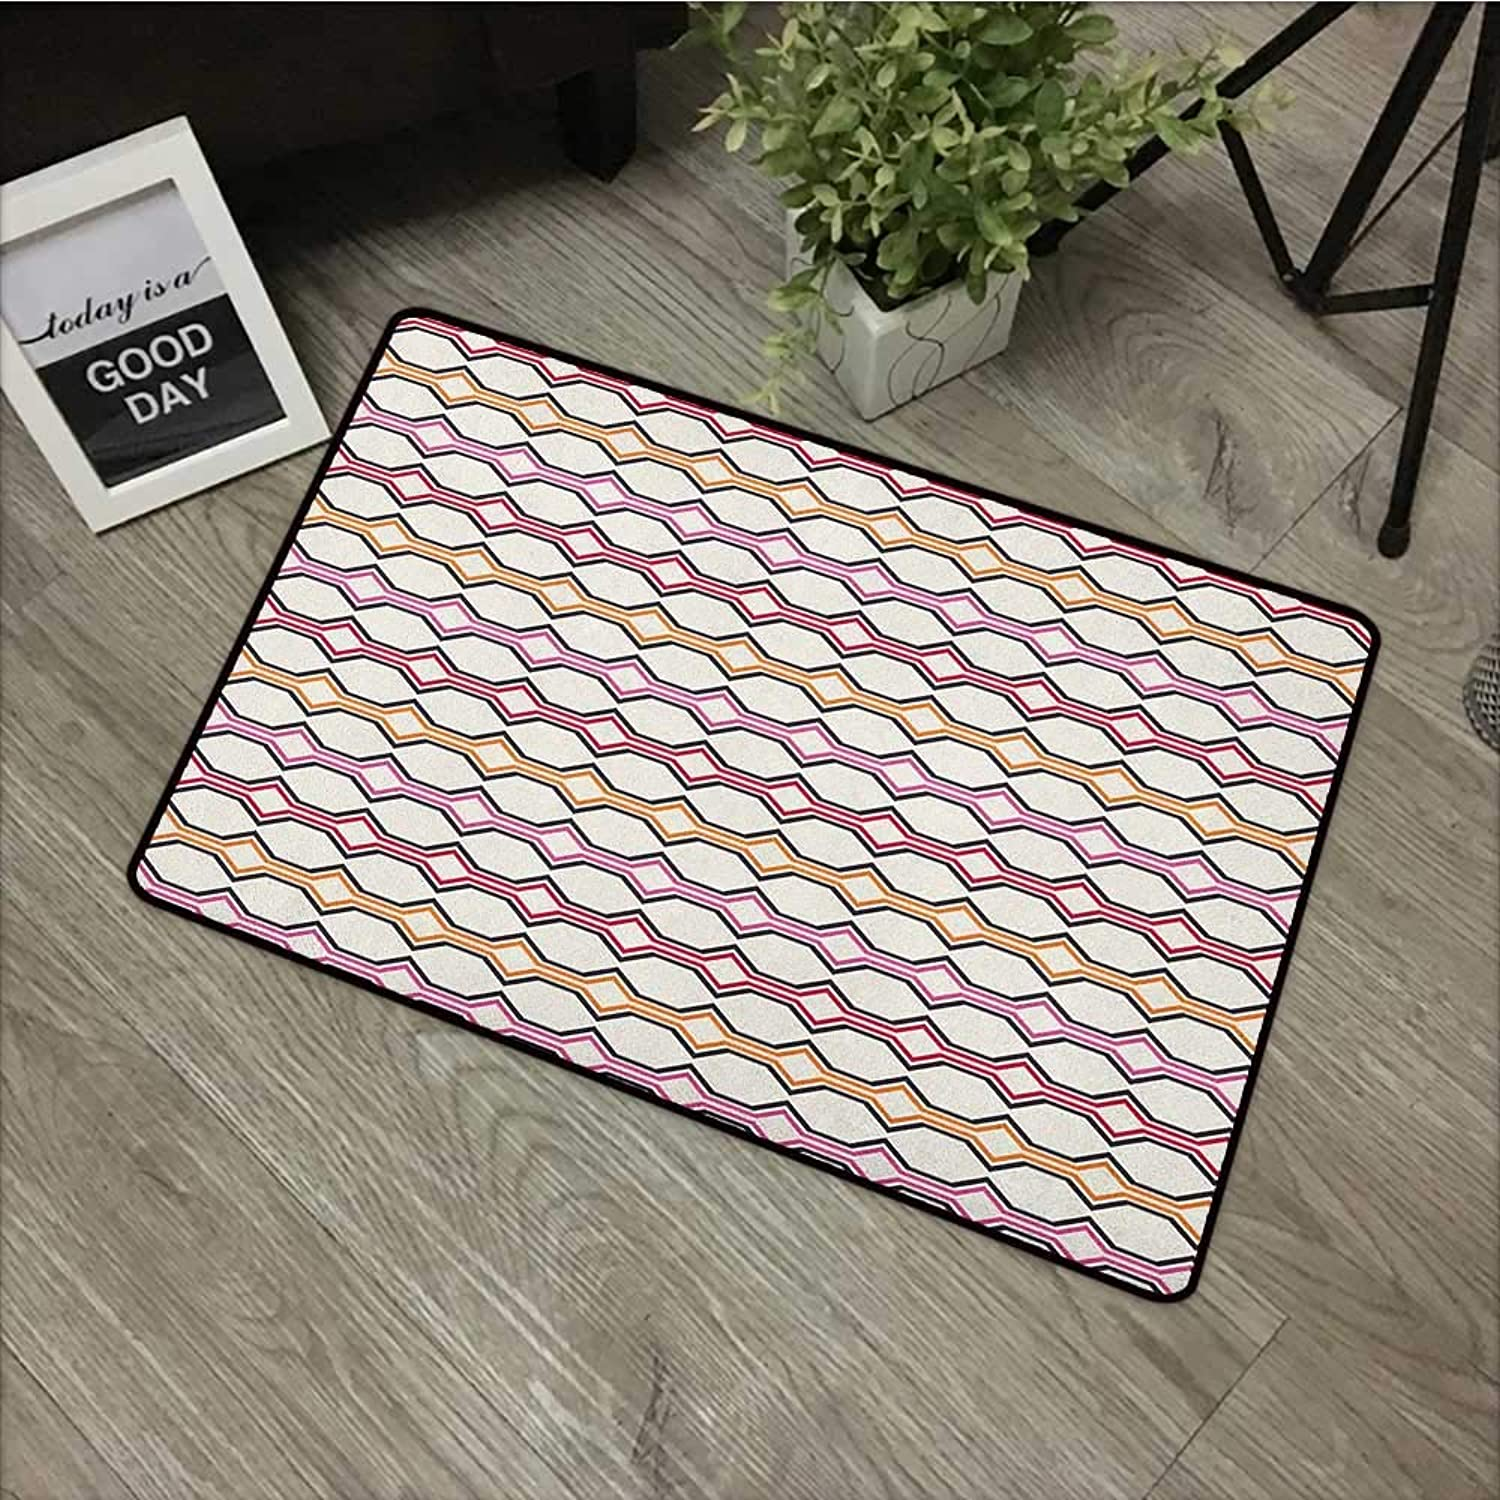 Interior mat W35 x L59 INCH Geometric,Hexagonal Shapes with Warm Tones Curved Lines and Rectangle Design Retro Motifs, Multicolor Easy to Clean, no Deformation, no Fading Non-Slip Door Mat Carpet